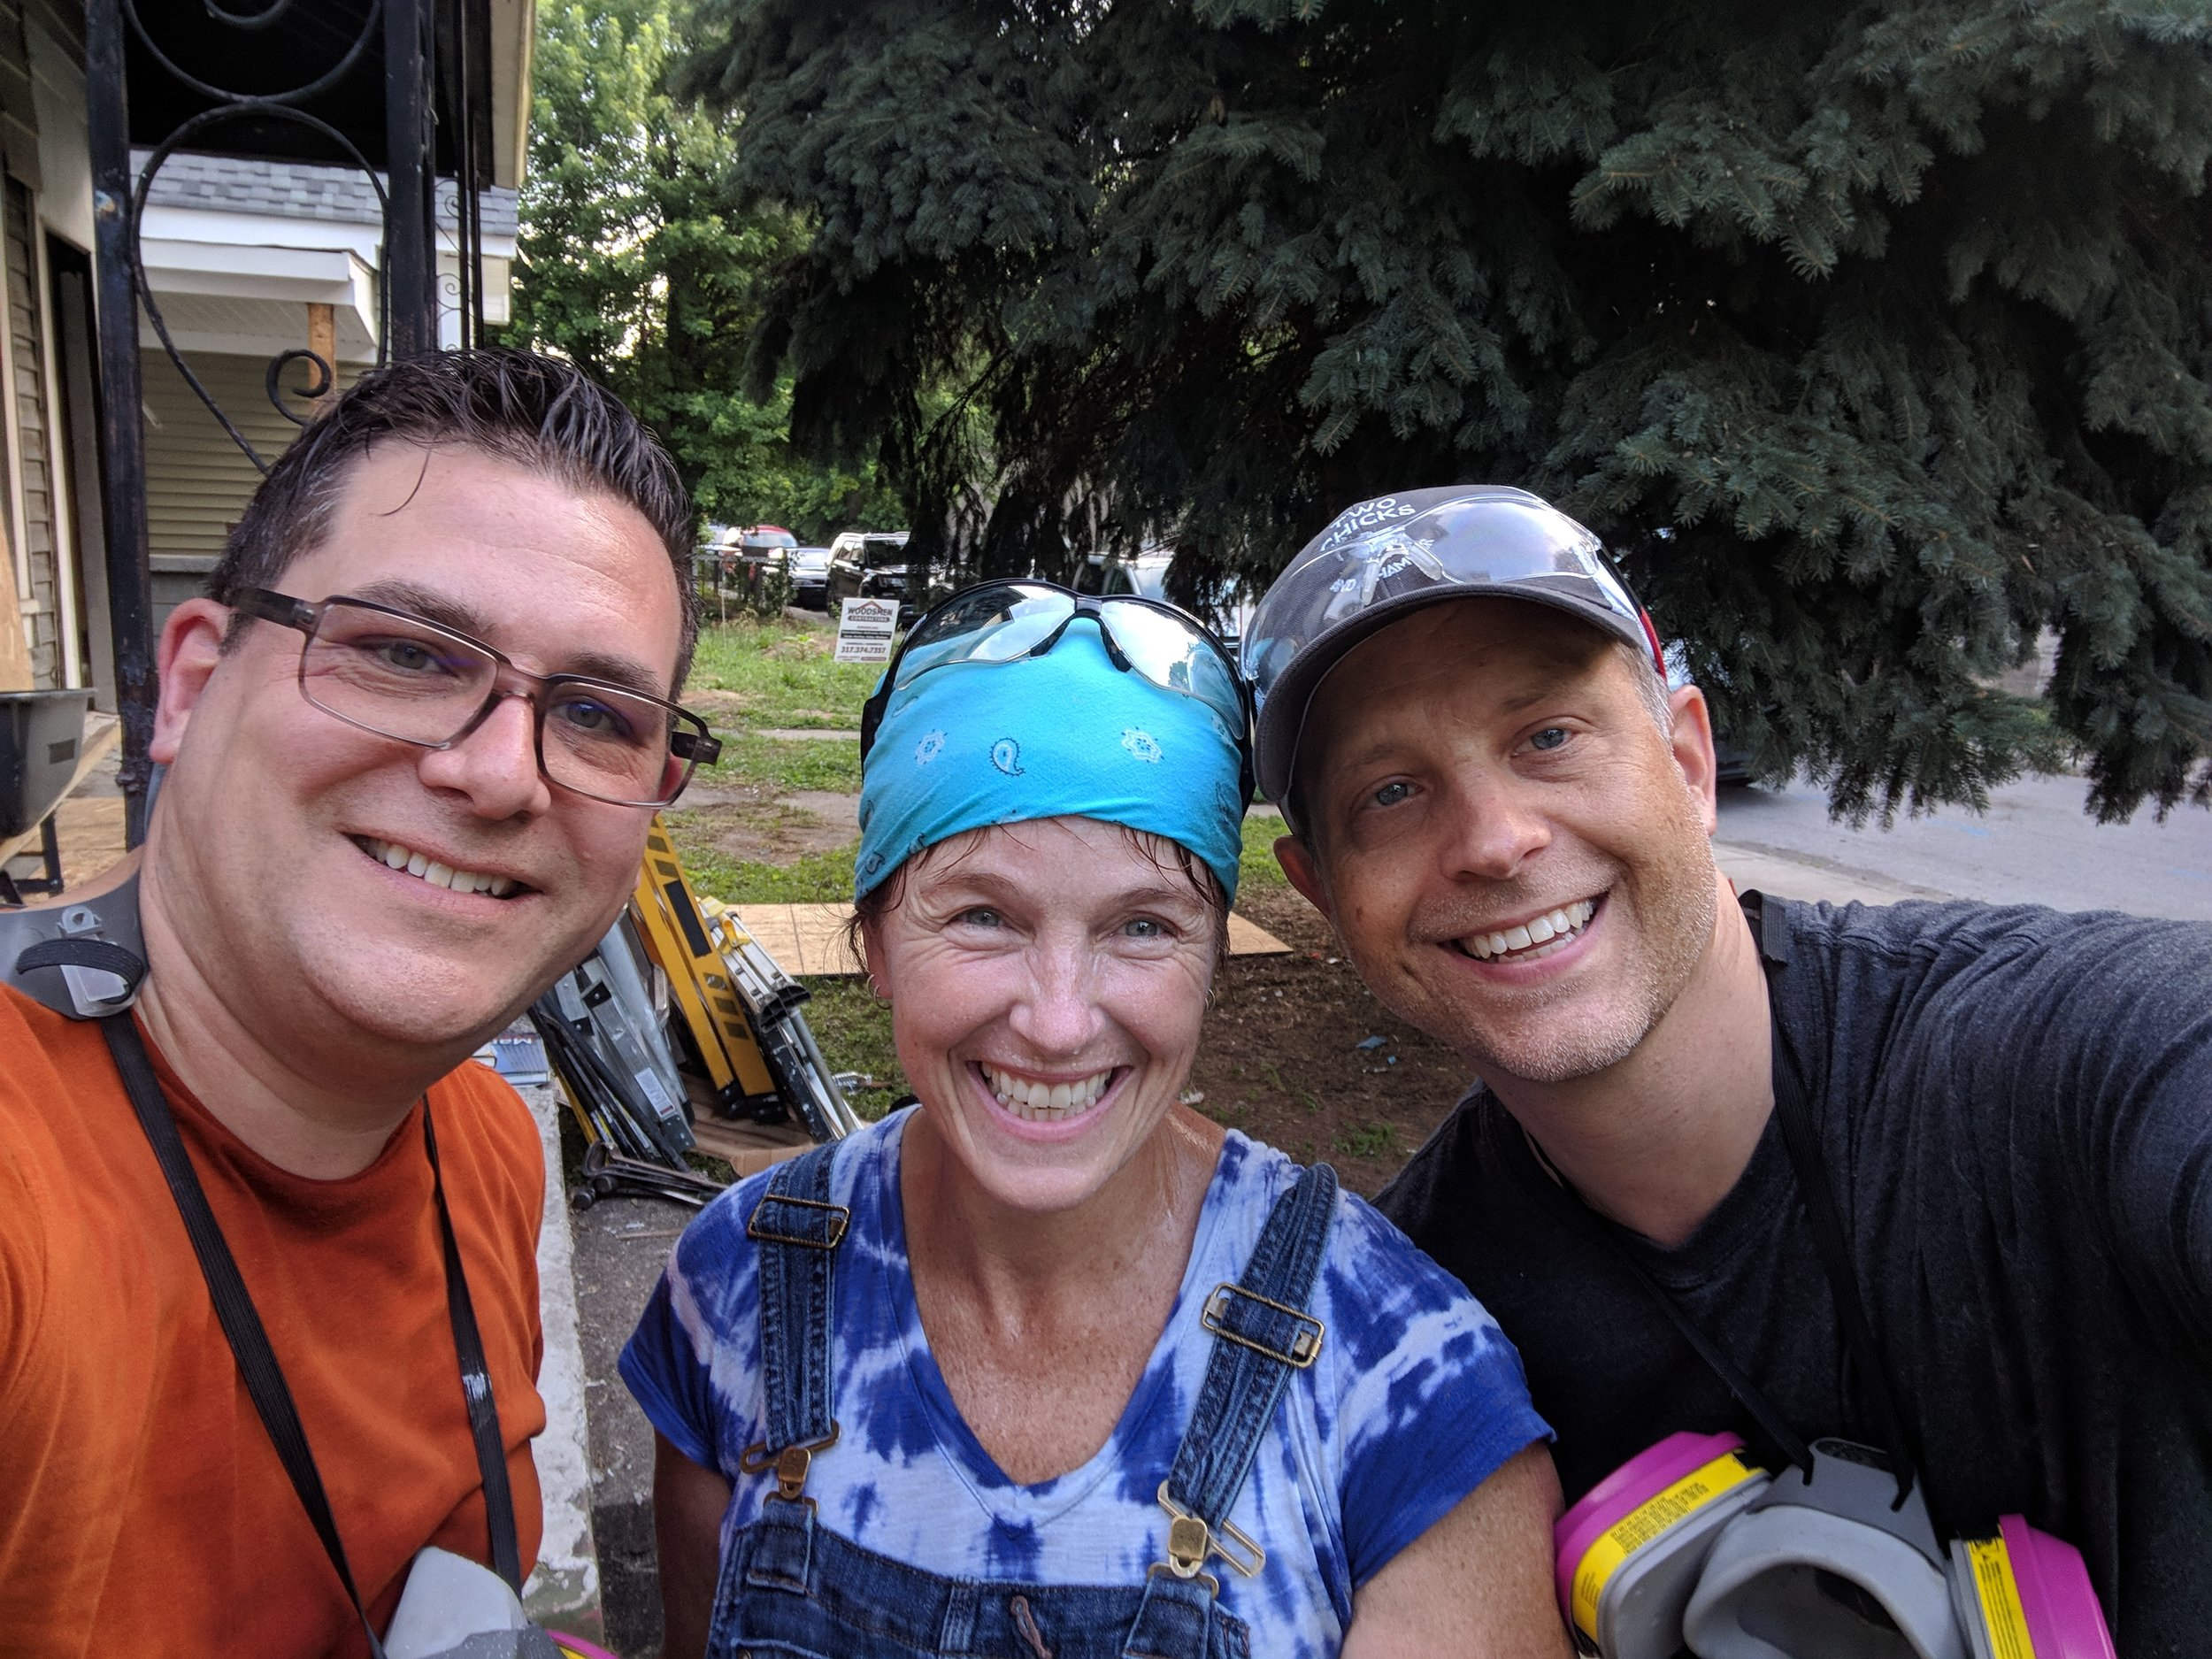 Rod, Karen, and Todd pause to take a selfie during a moment of filming the demolition on one of the houses